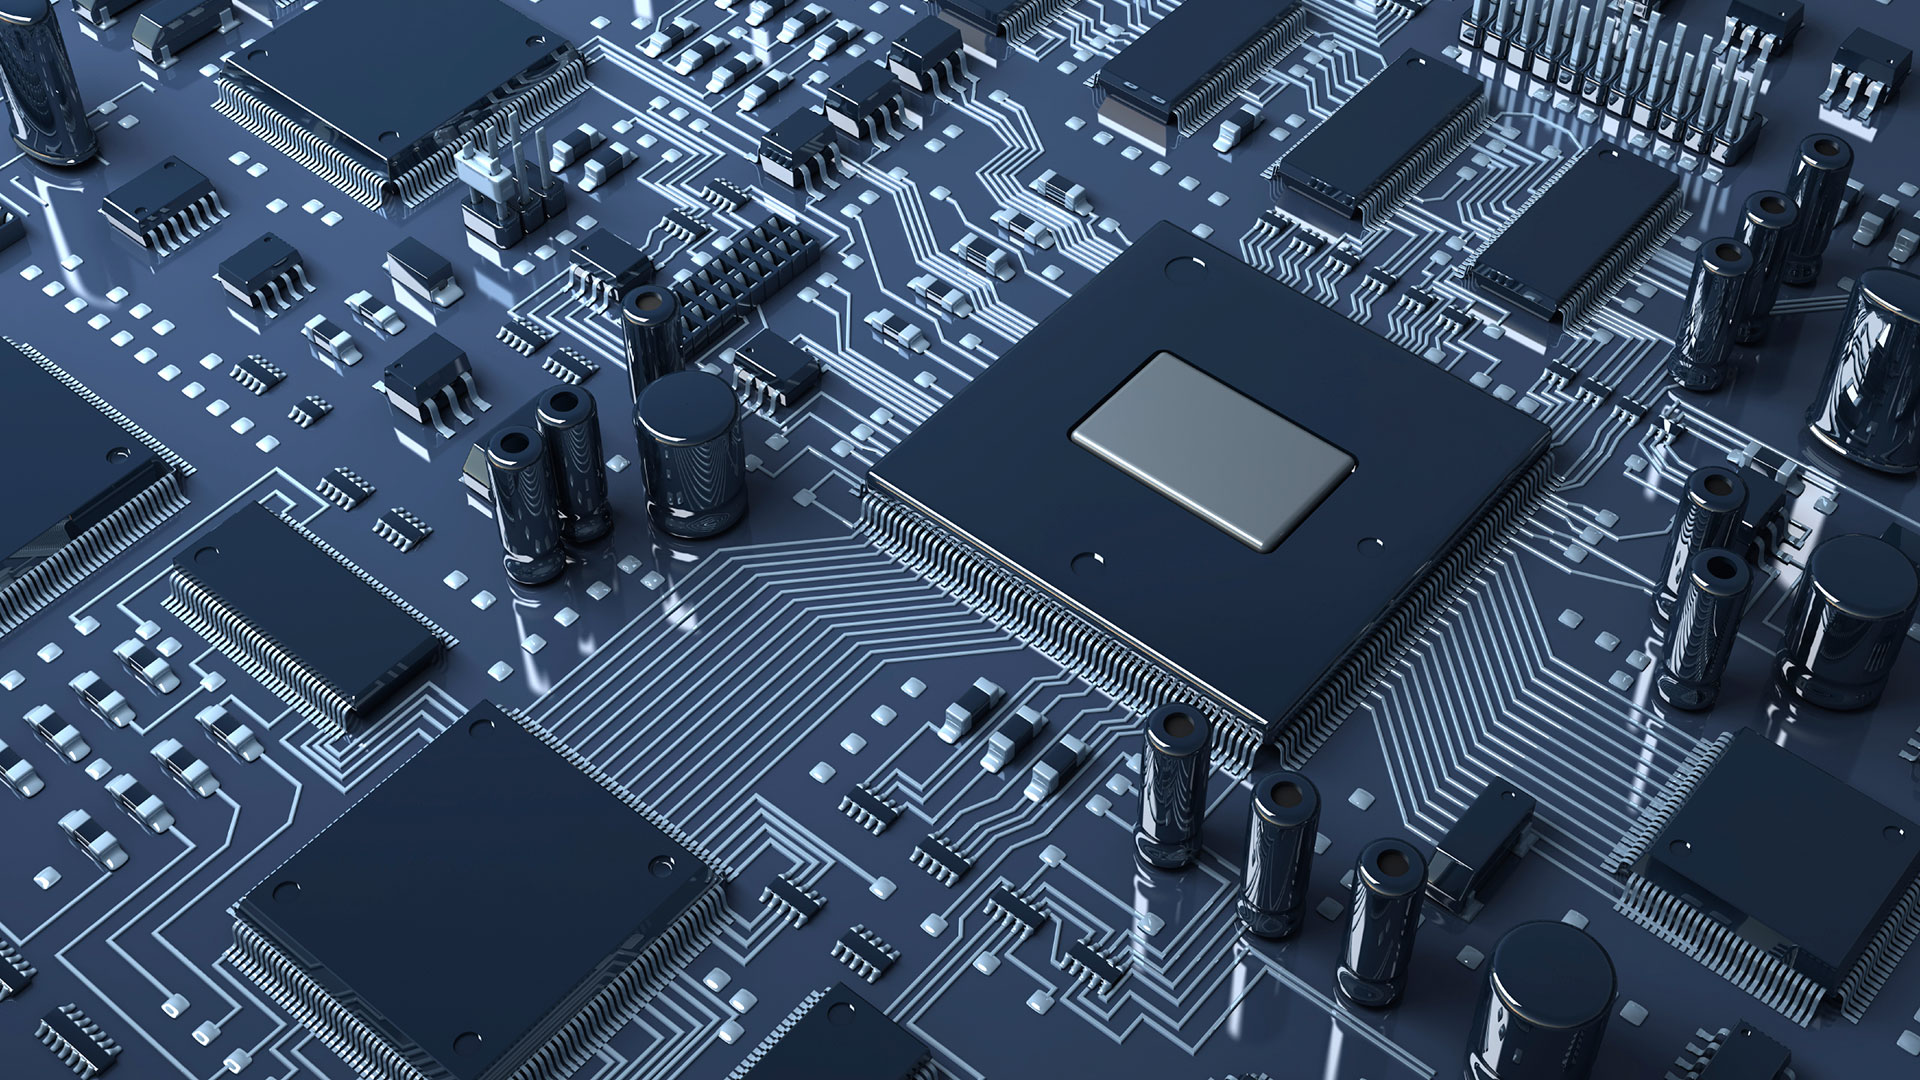 Facebook Intends to Design its Own Chips